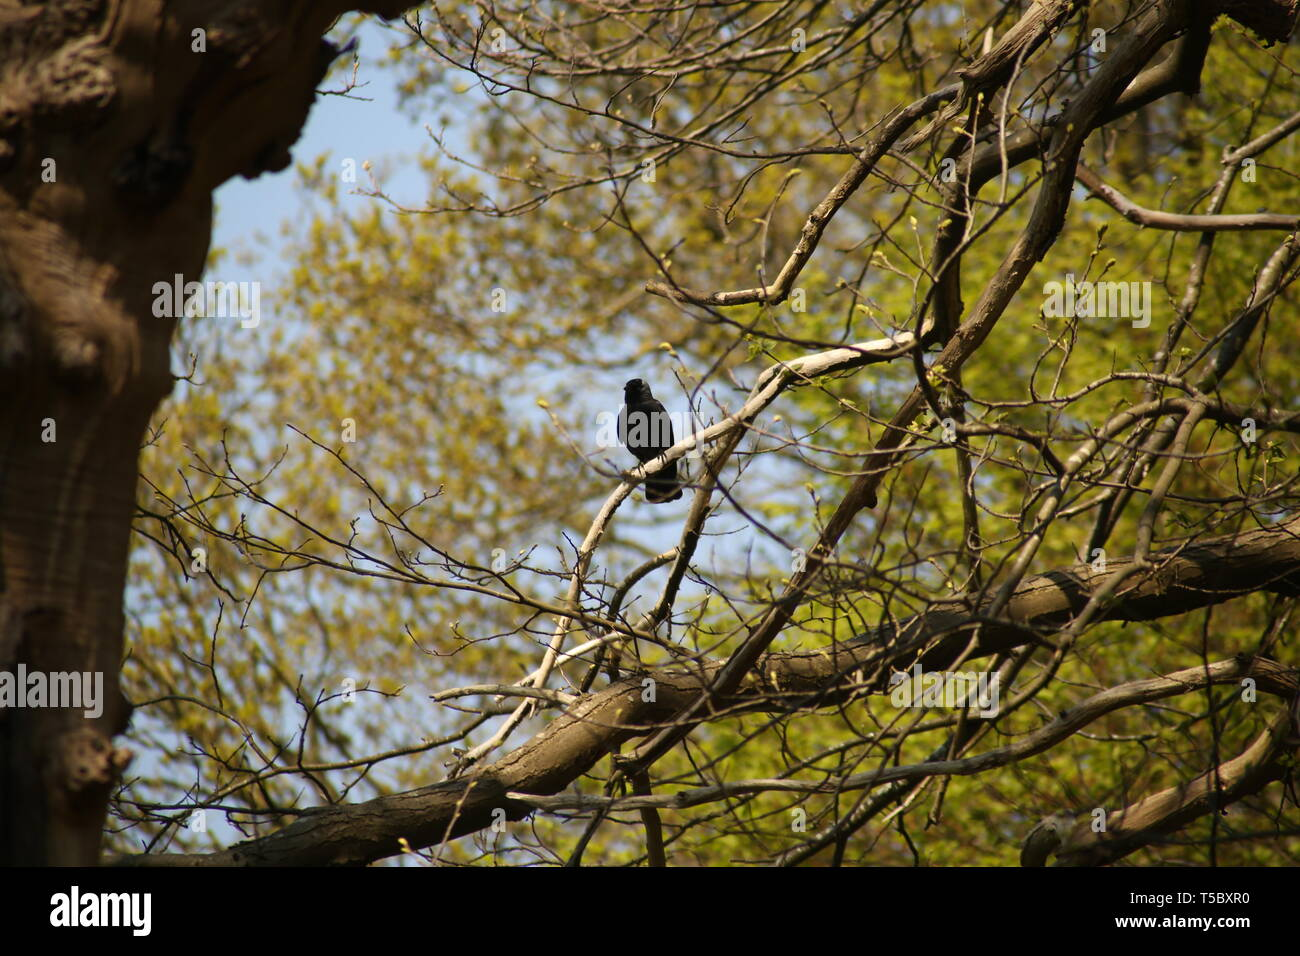 A crow perched aloft, high up on a tree surveying the surrounding territory. - Stock Image